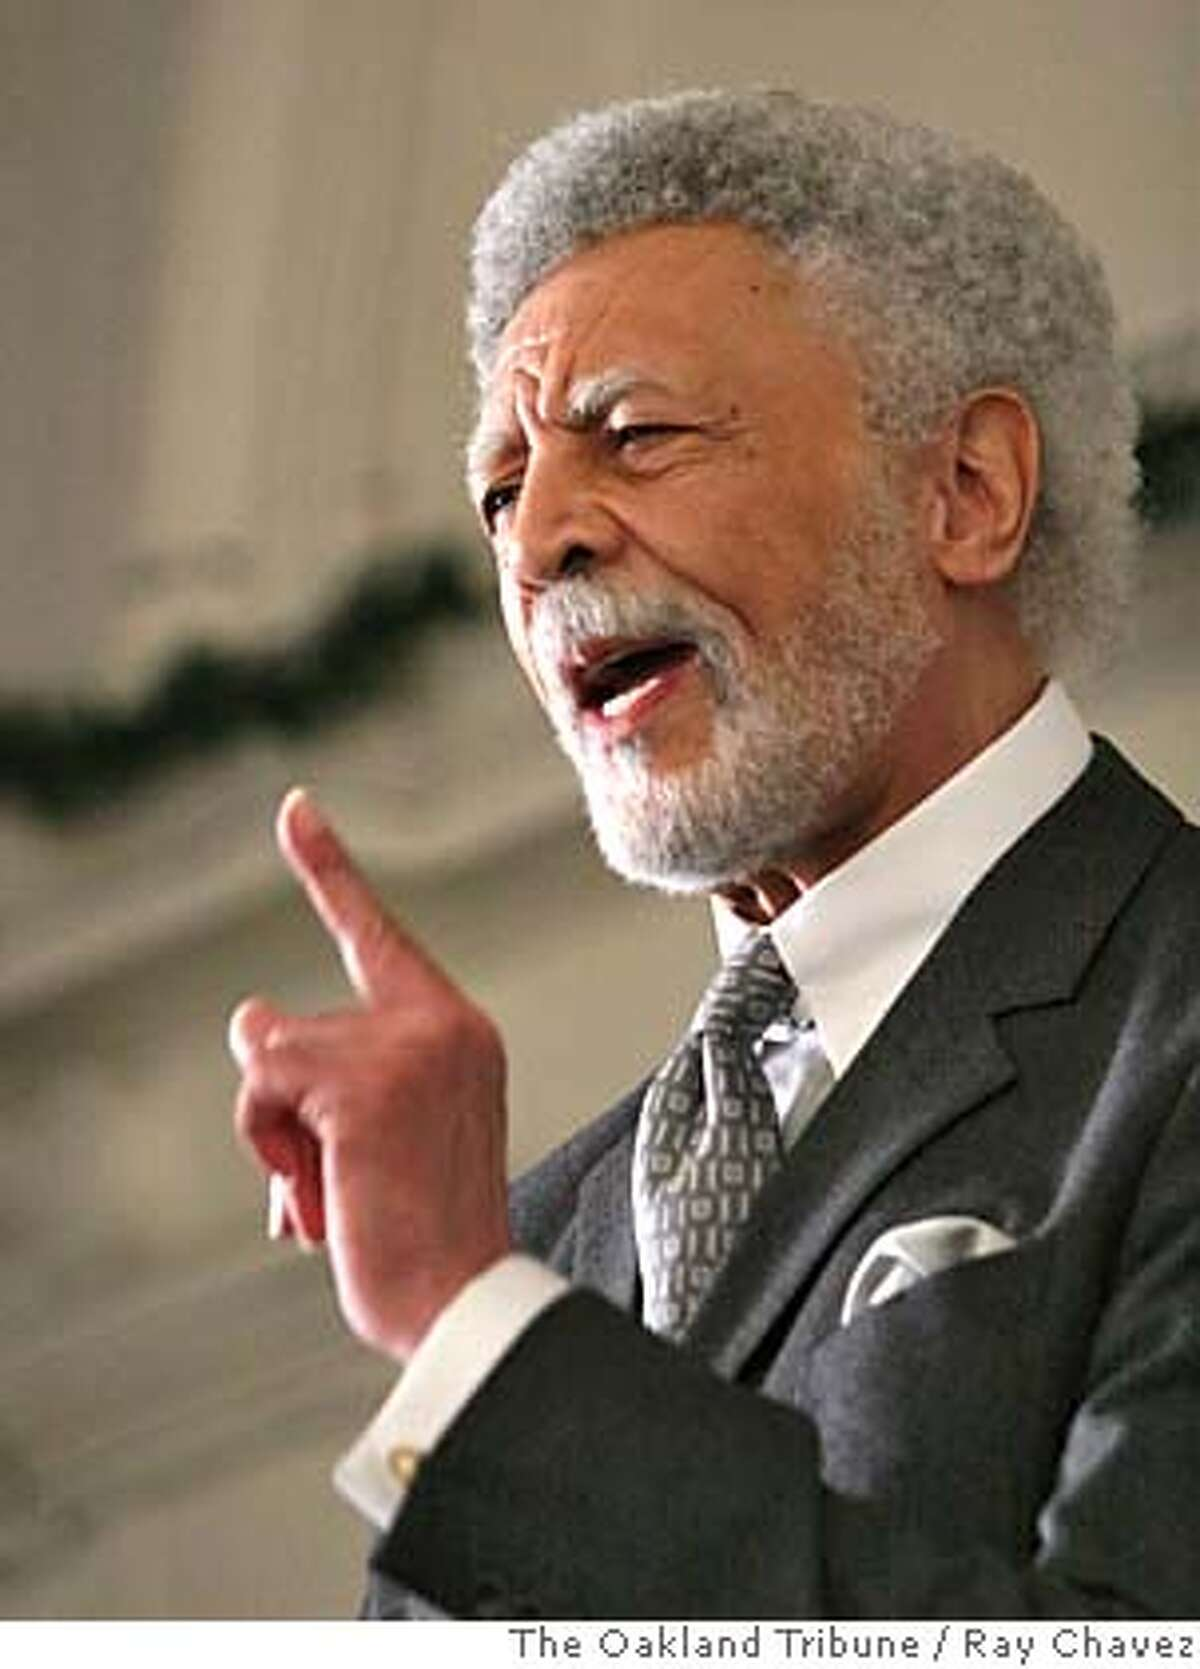 Mayoral candidate for the City of Oakland Ron Dellums gives a speech in remembrance of Civil Rights leader Martin Luther King Jr., before the Oakland Black Board of Trade and Commerce Monday Jan. 16, 2006, in Oakland, Calif. (AP Photo/The Oakland Tribune, Ray Chavez) ** LOCALS PLEASE CREDIT, MAGS OUT, ONLINES OUT ** Ran on: 01-19-2006 Dellums STAND ALONE NEWSLOCALS PLEASE CREDIT/MAGS OUT ONLINE OUT